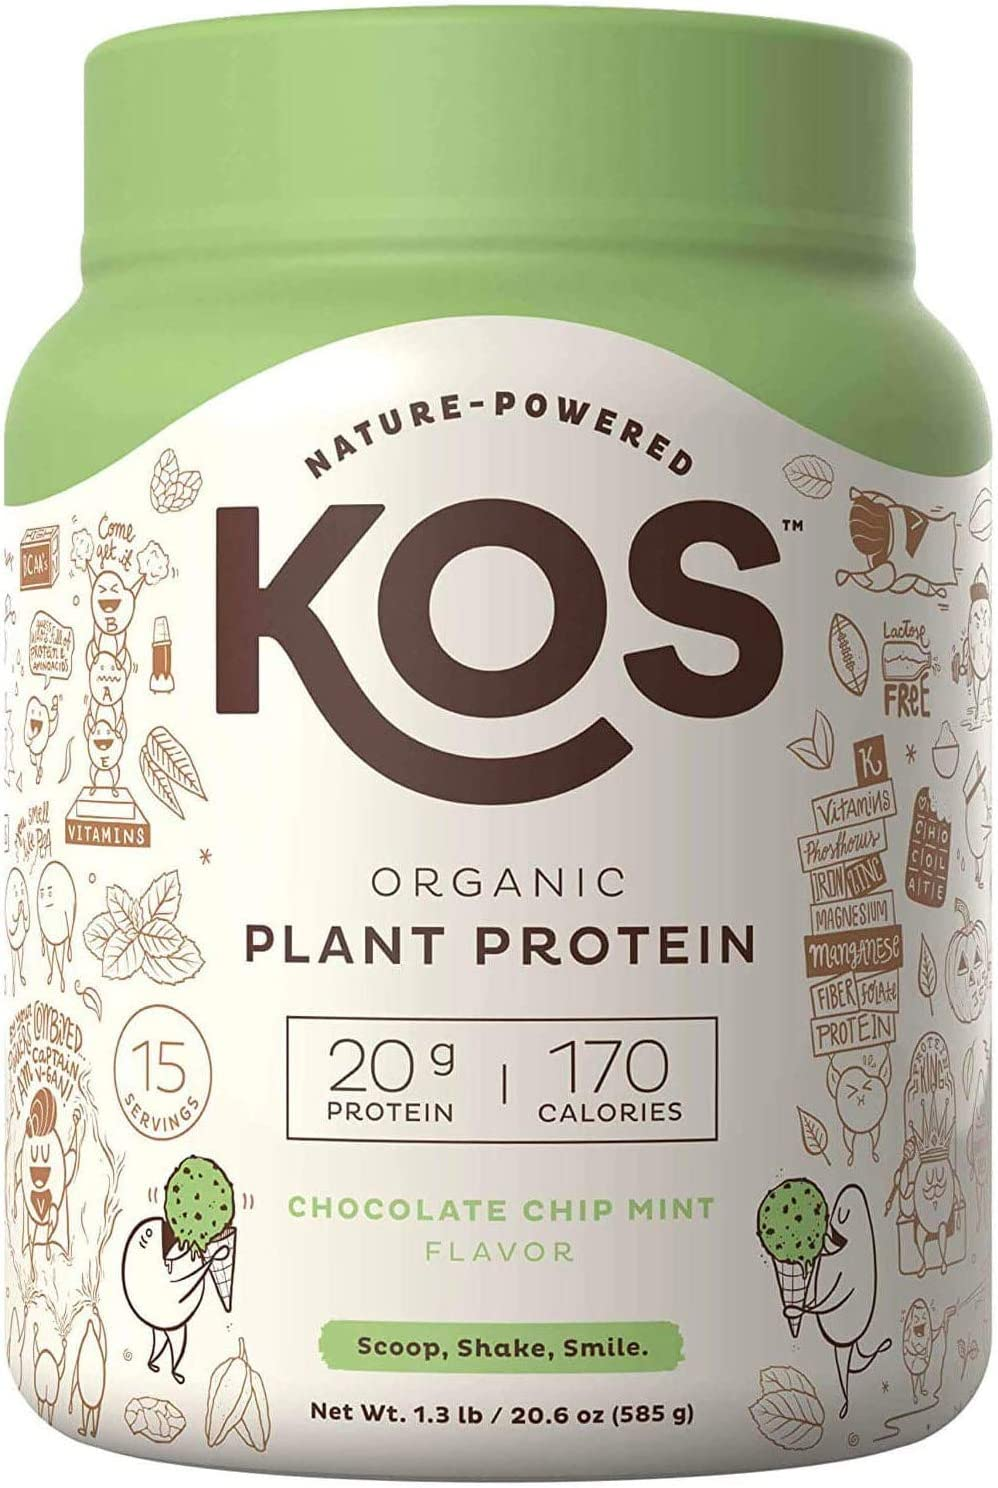 KOS Organic Plant Based Protein Powder – Chocolate Chip Mint Protein Powder – Gluten, Dairy Soy Free Vegan Protein Powder – Ideal for Meal Replacement Shakes for Weight Loss – 1.3 Pounds, 15 Serving